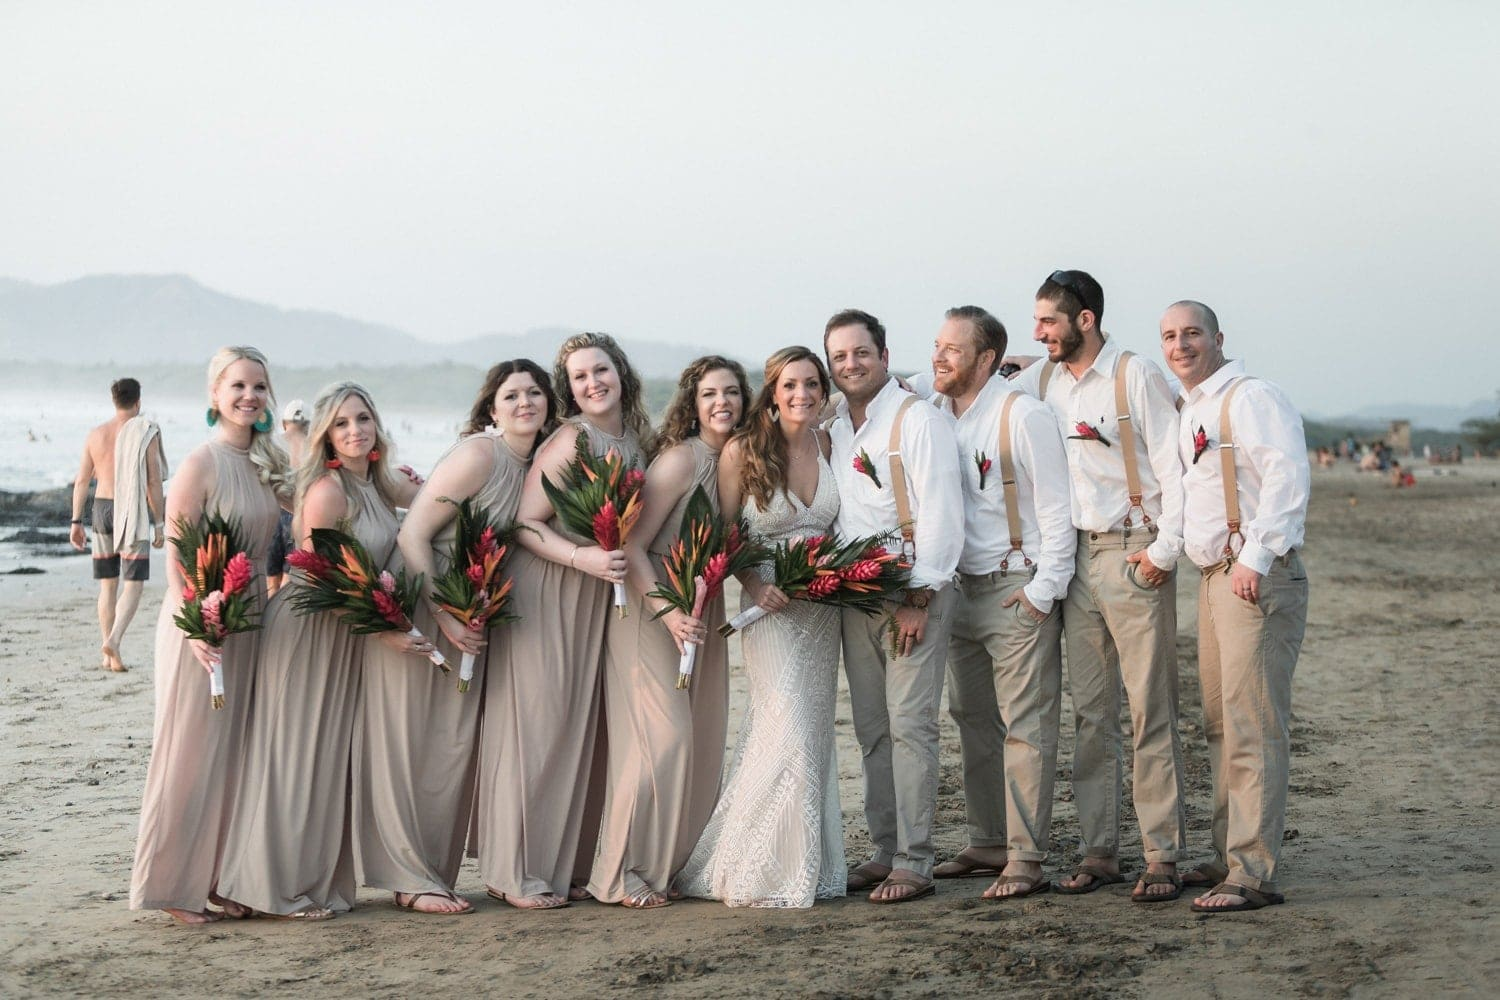 Wedding photo of bridal part on Tamarindo Beach, Costa Rica.